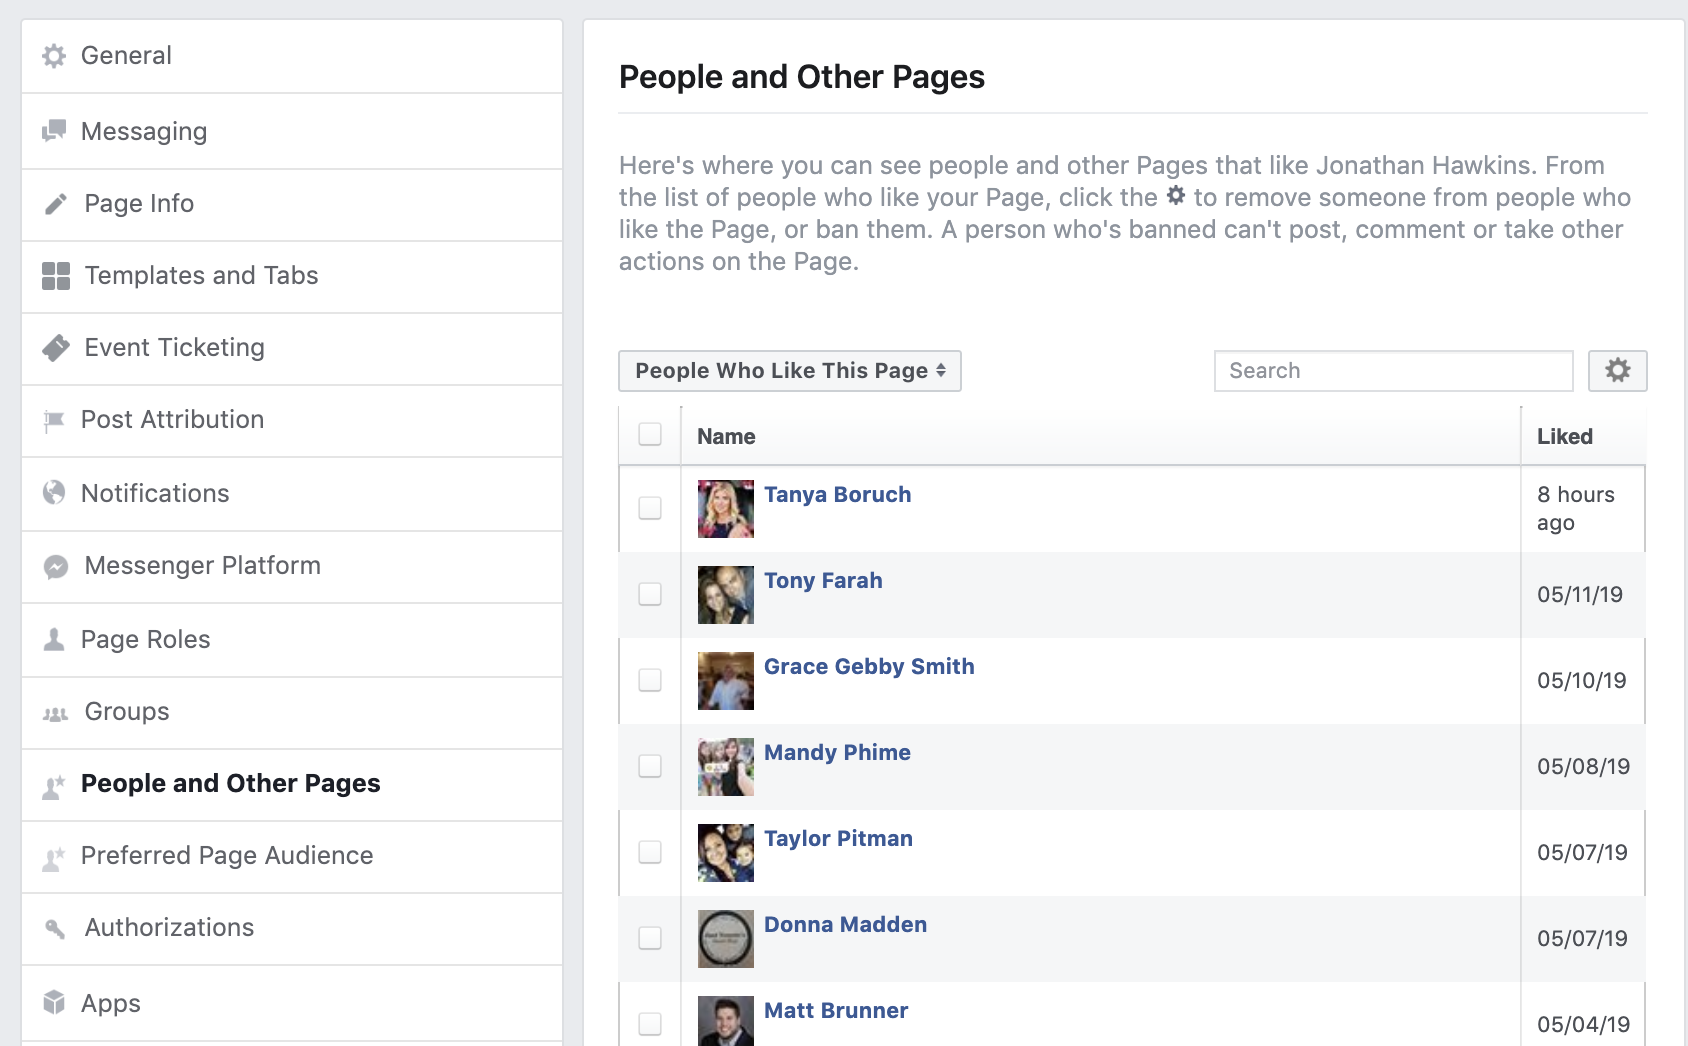 Facebook People and Other Pages